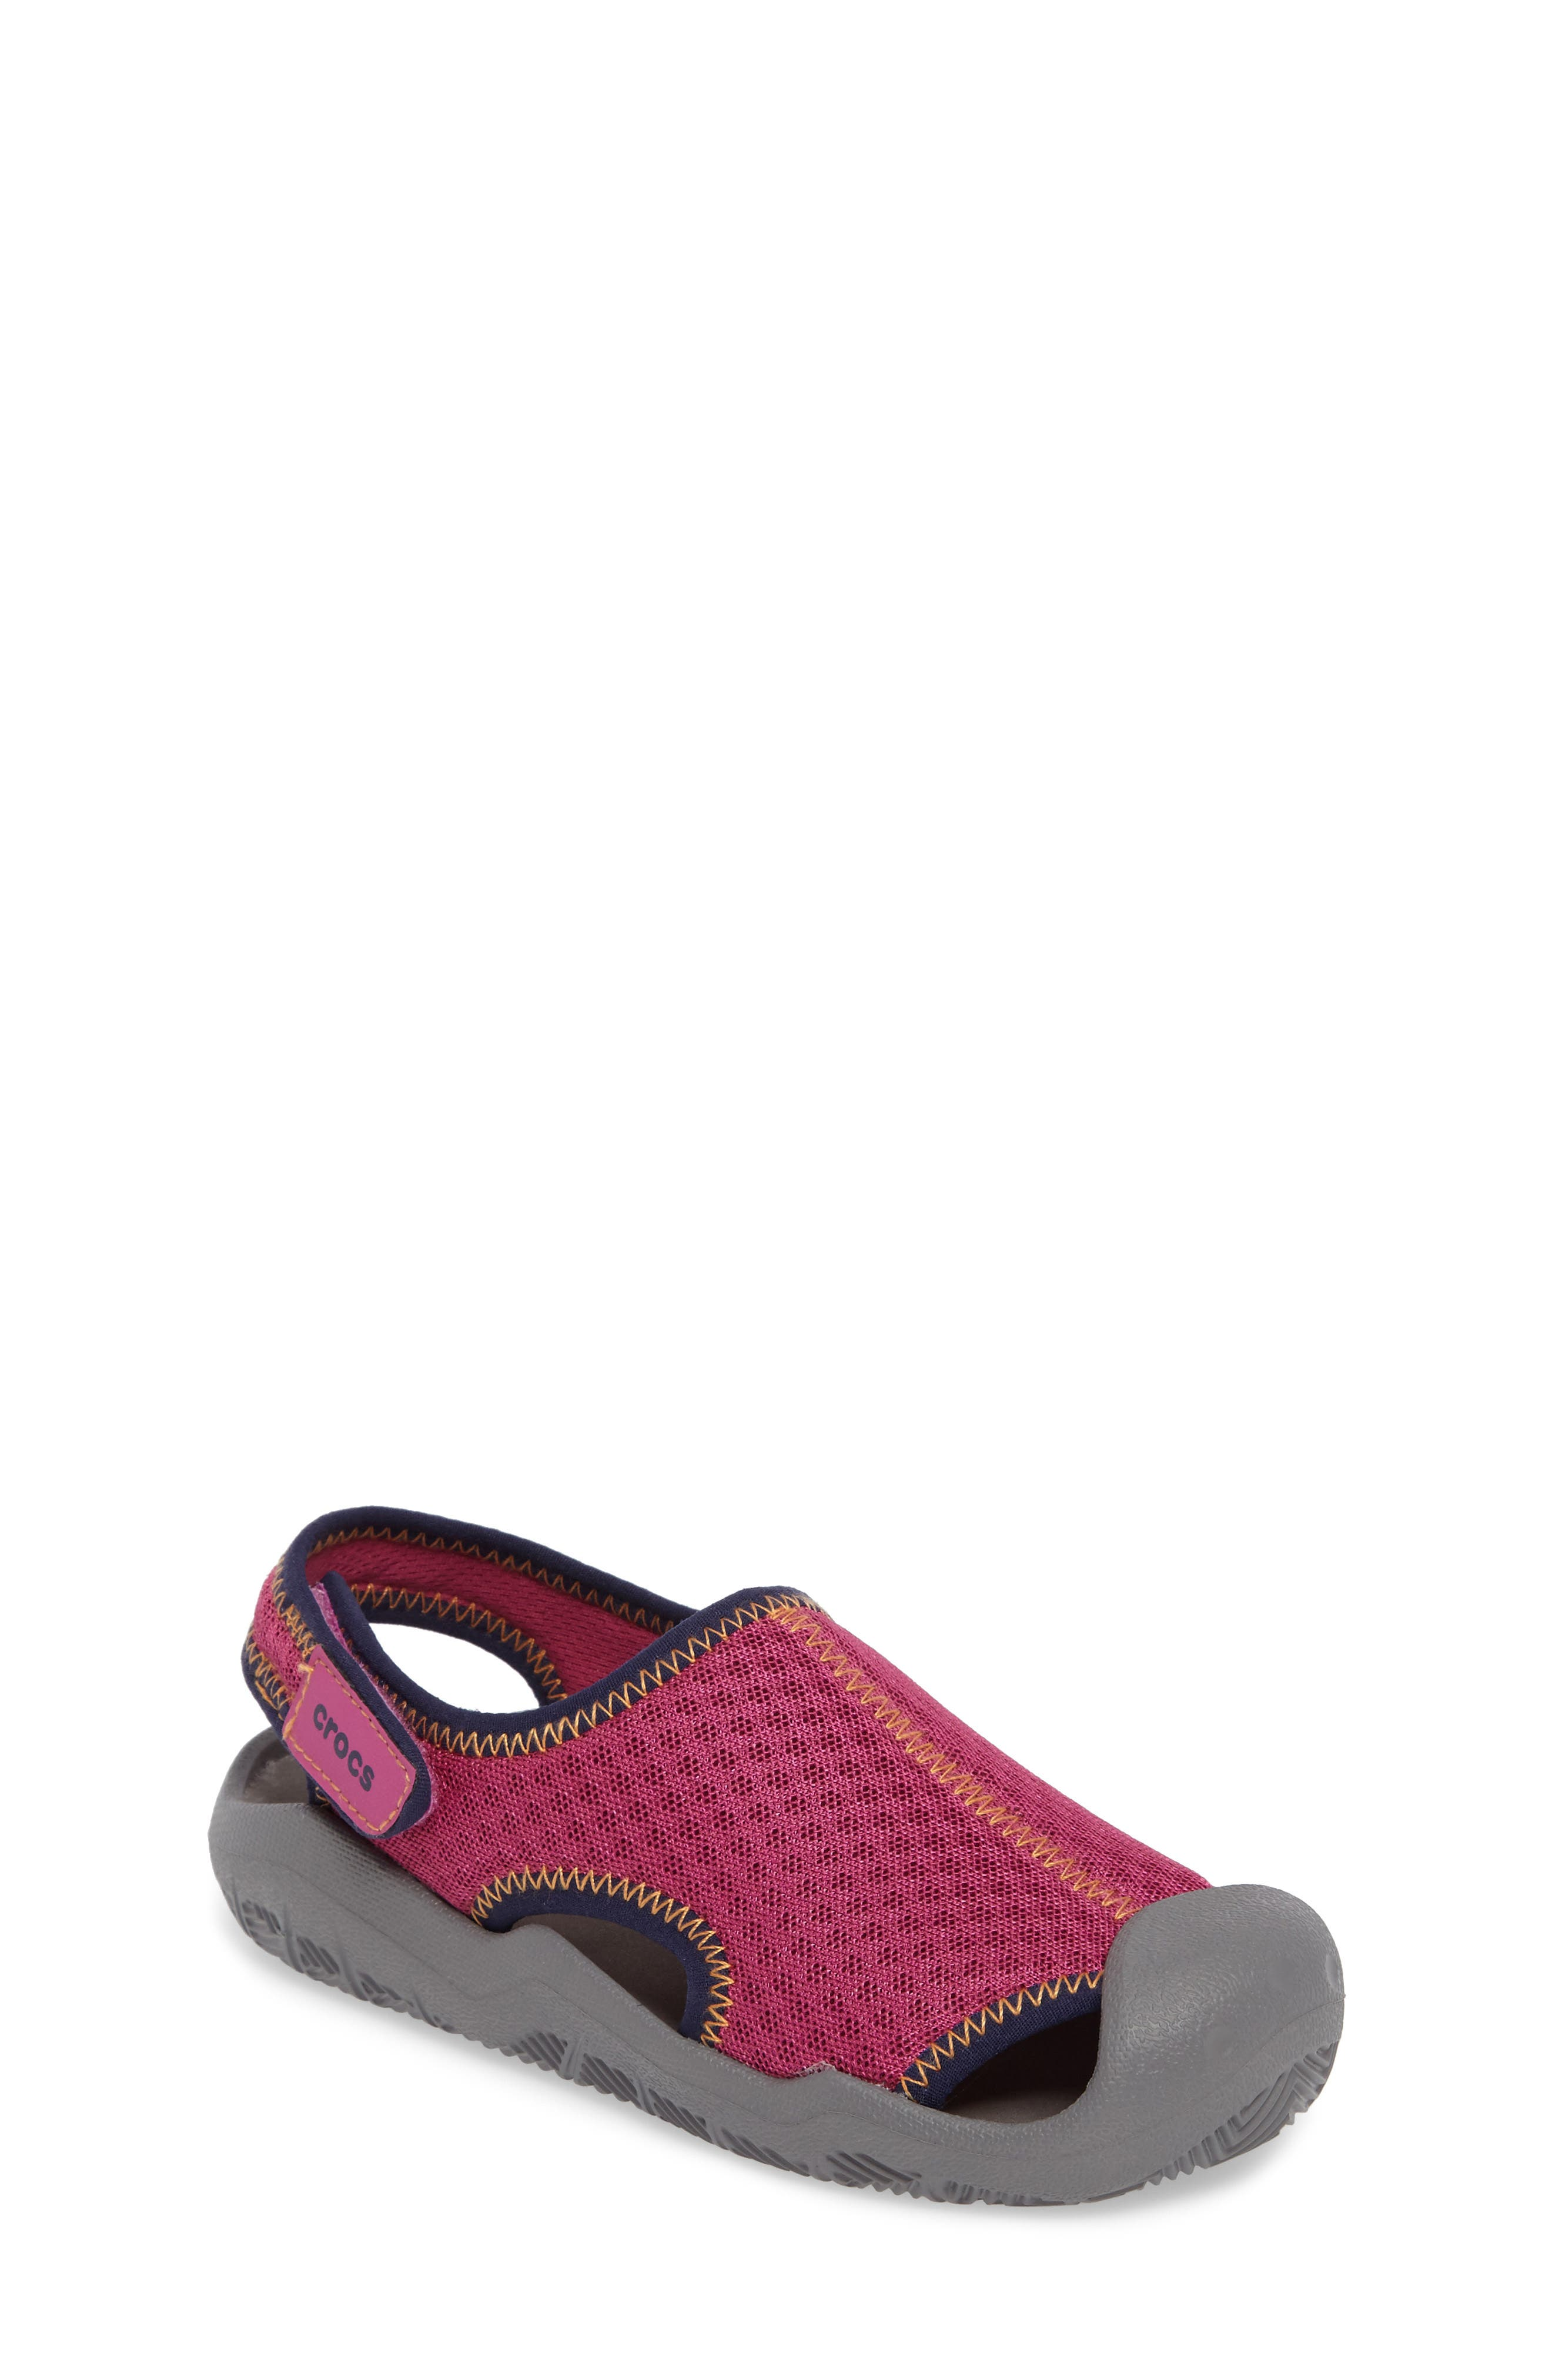 Swiftwater Sandal,                             Main thumbnail 4, color,